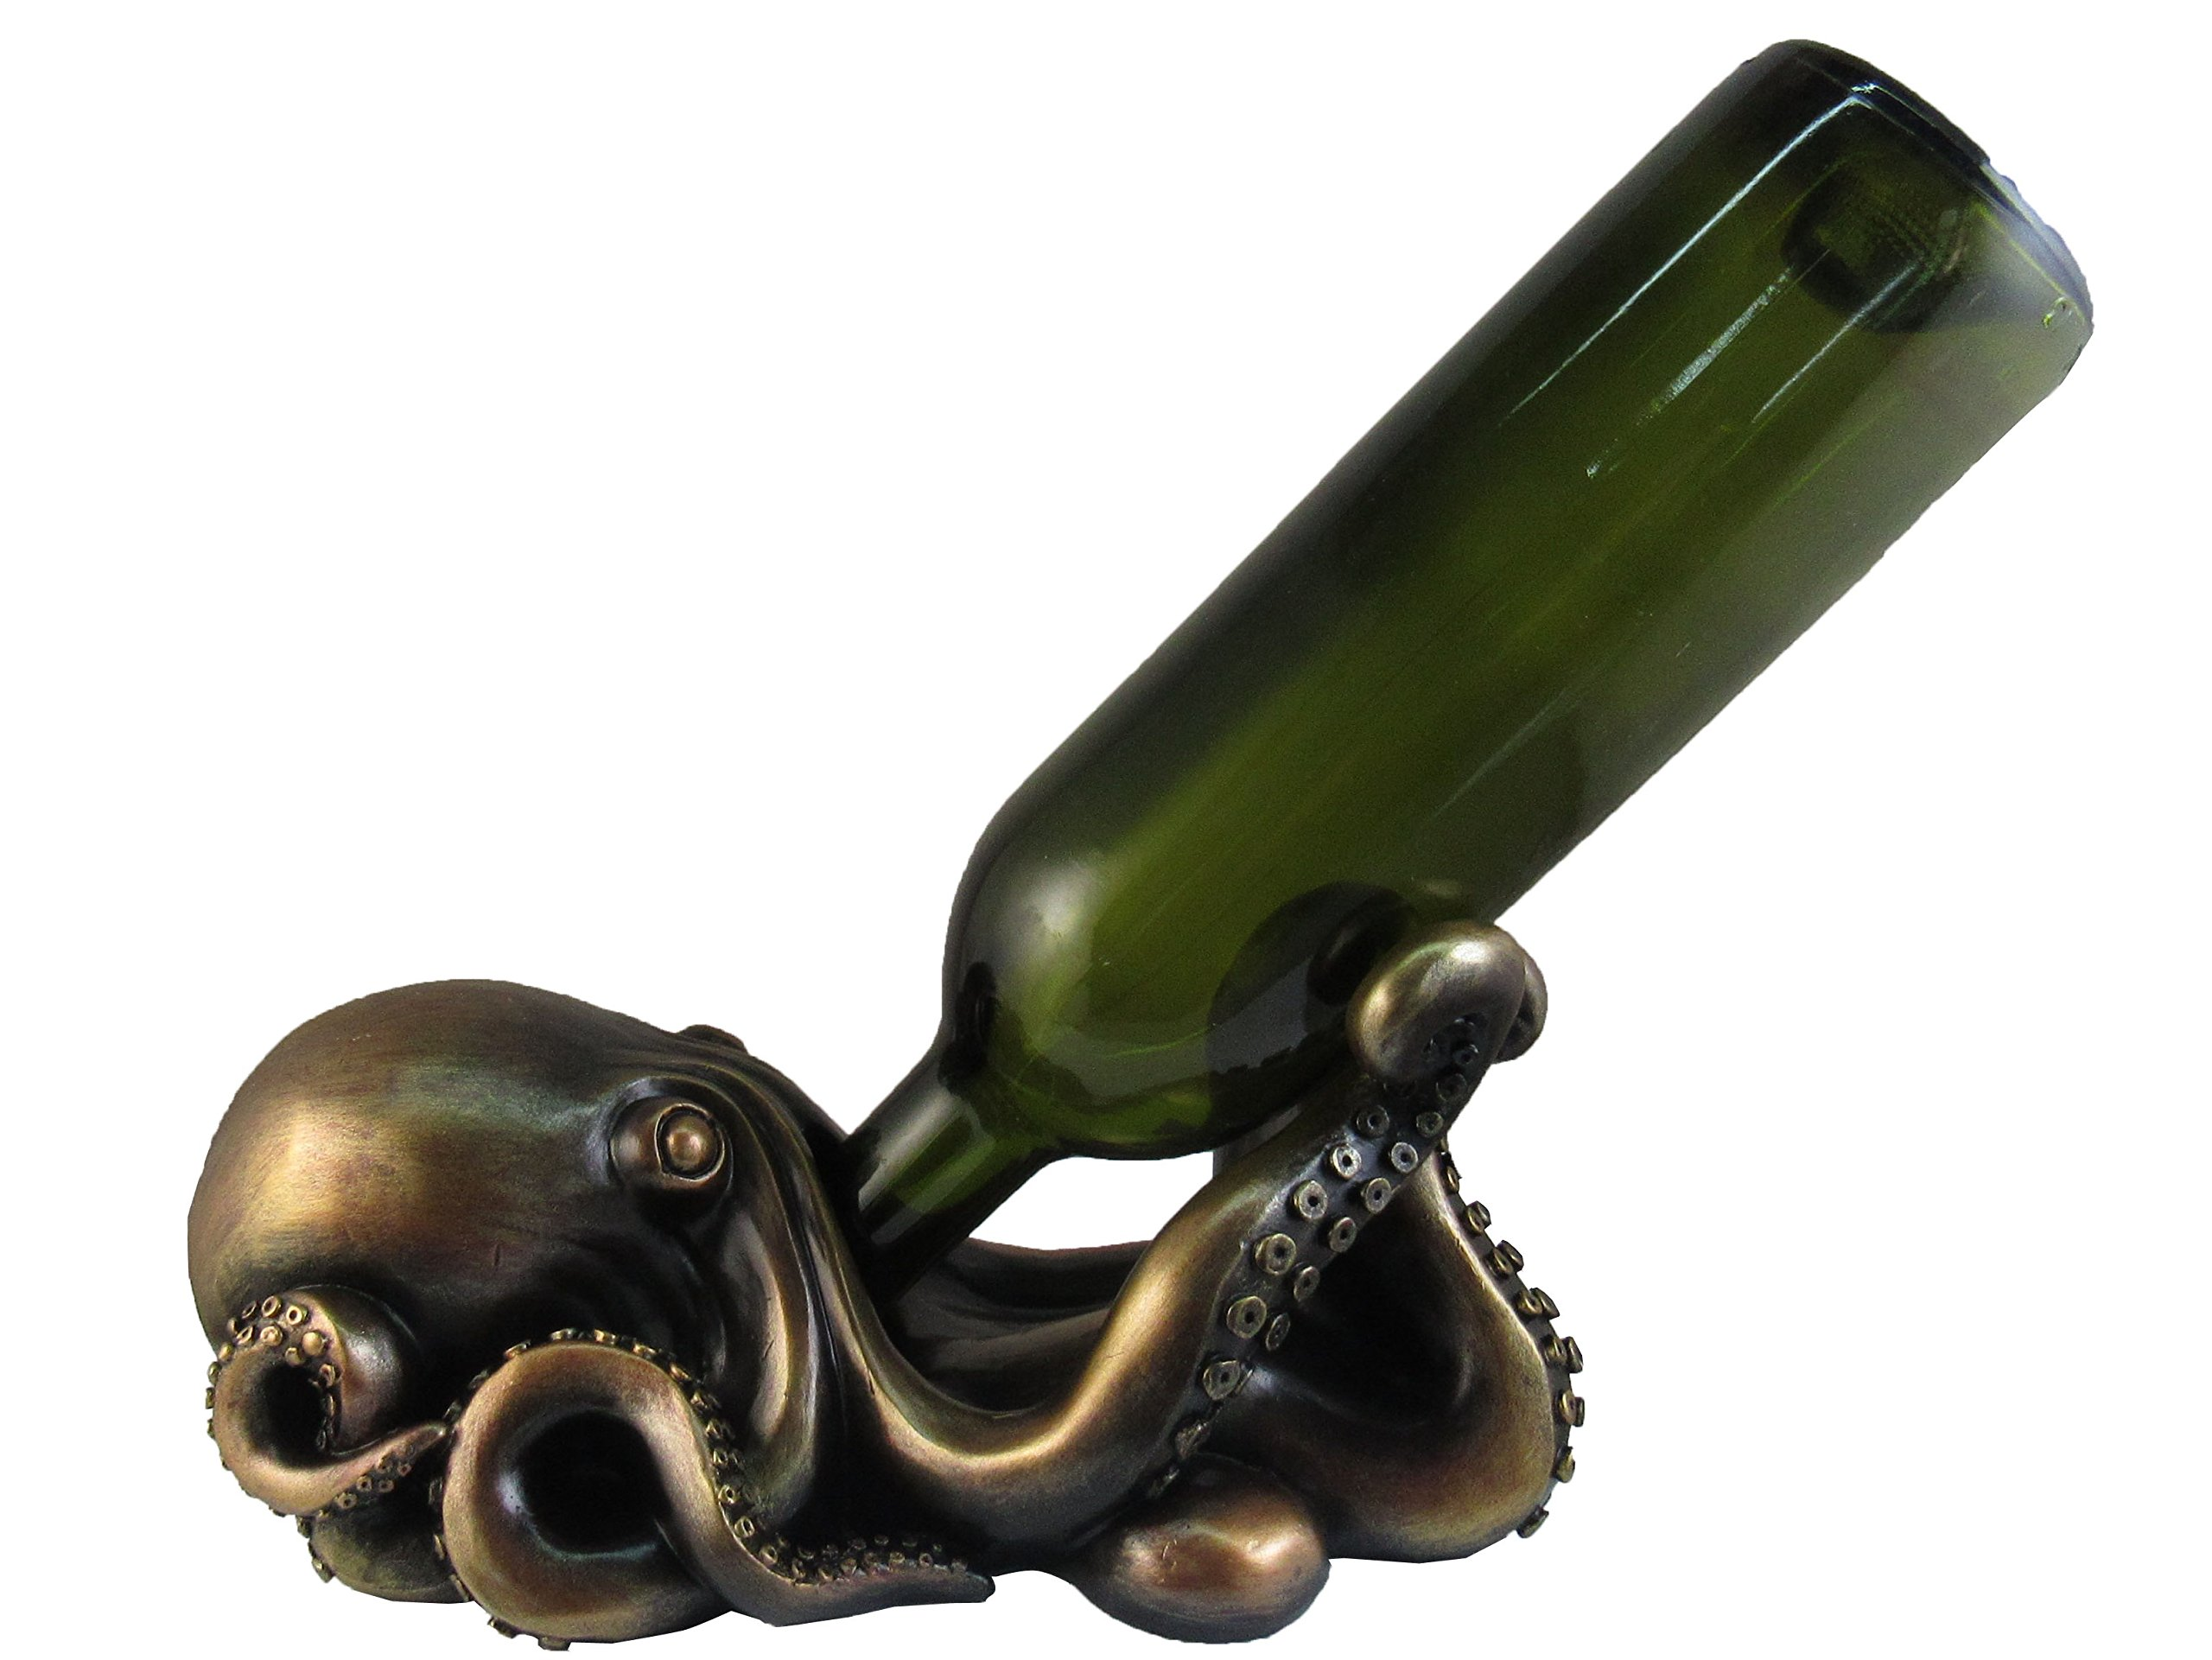 DWK Thirsty Octopus Drinking Wine Bottle Holder By Nautical Bronze Statue Steampunk Figurines Ocean Home Decor And Gifts